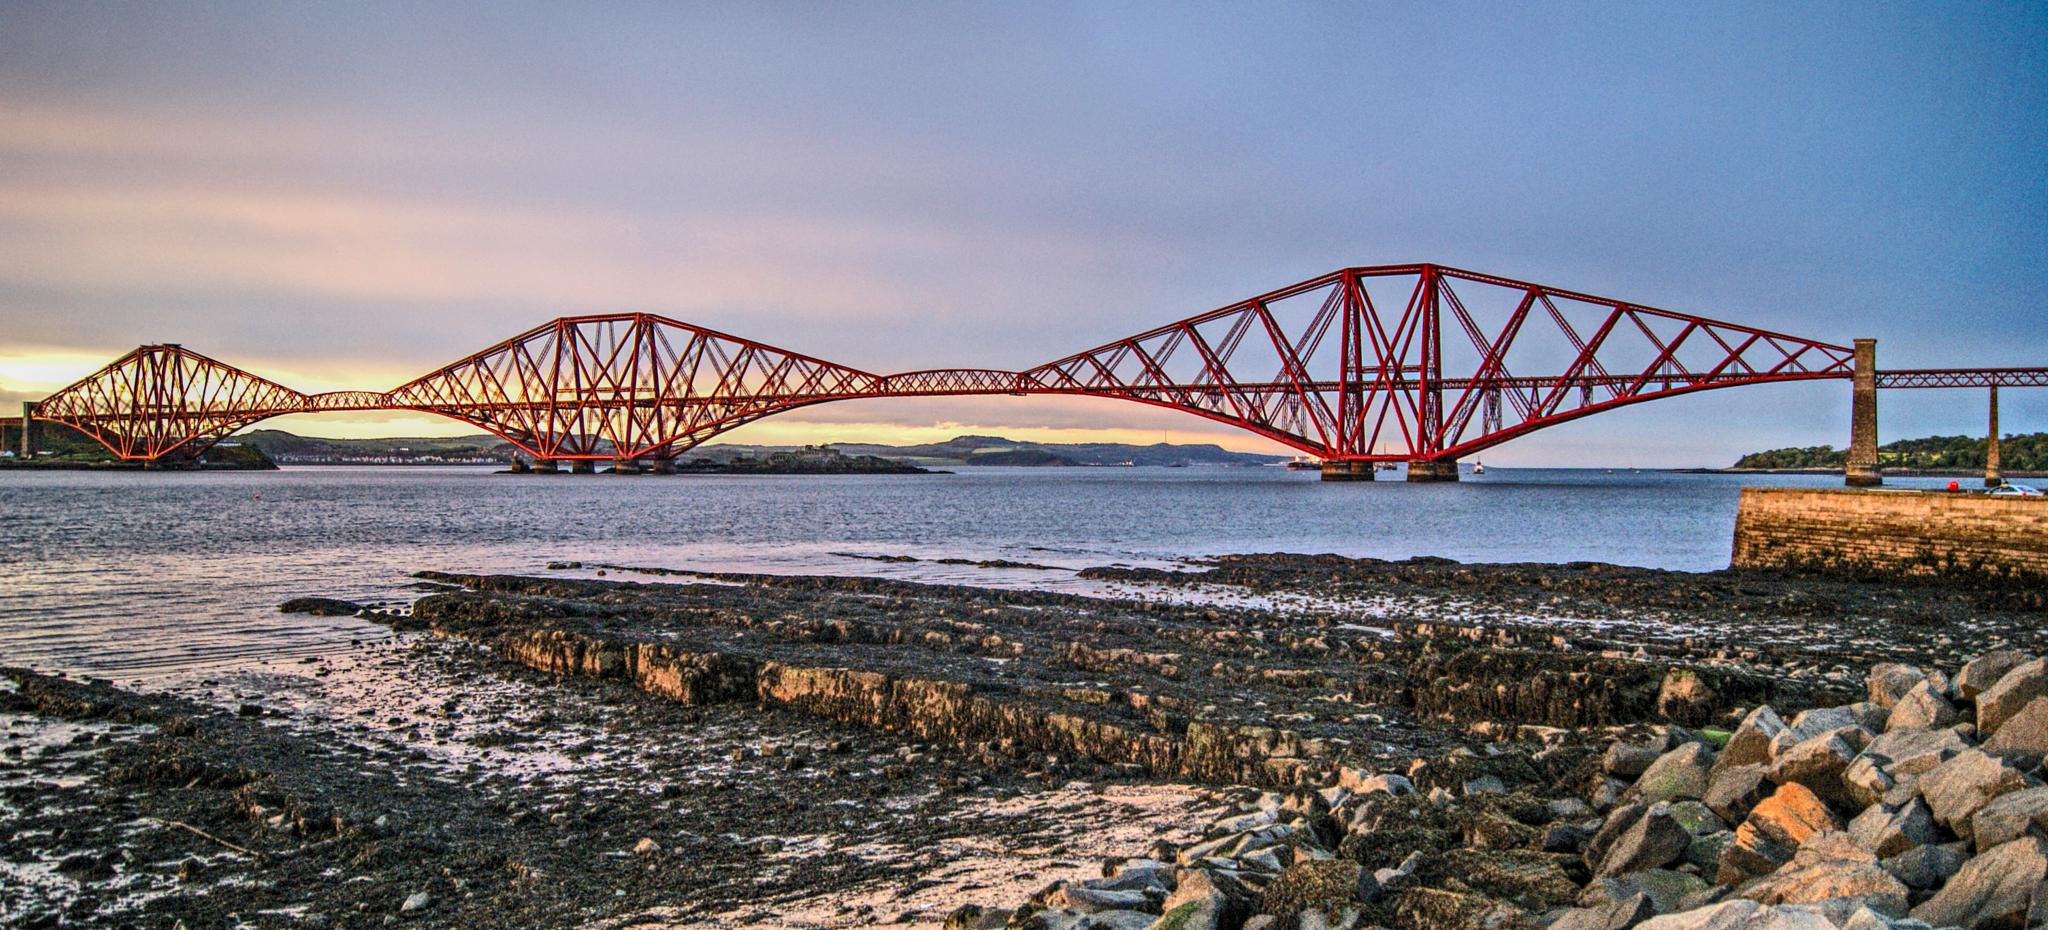 Bridge at South Queensferry by graham.drew.90